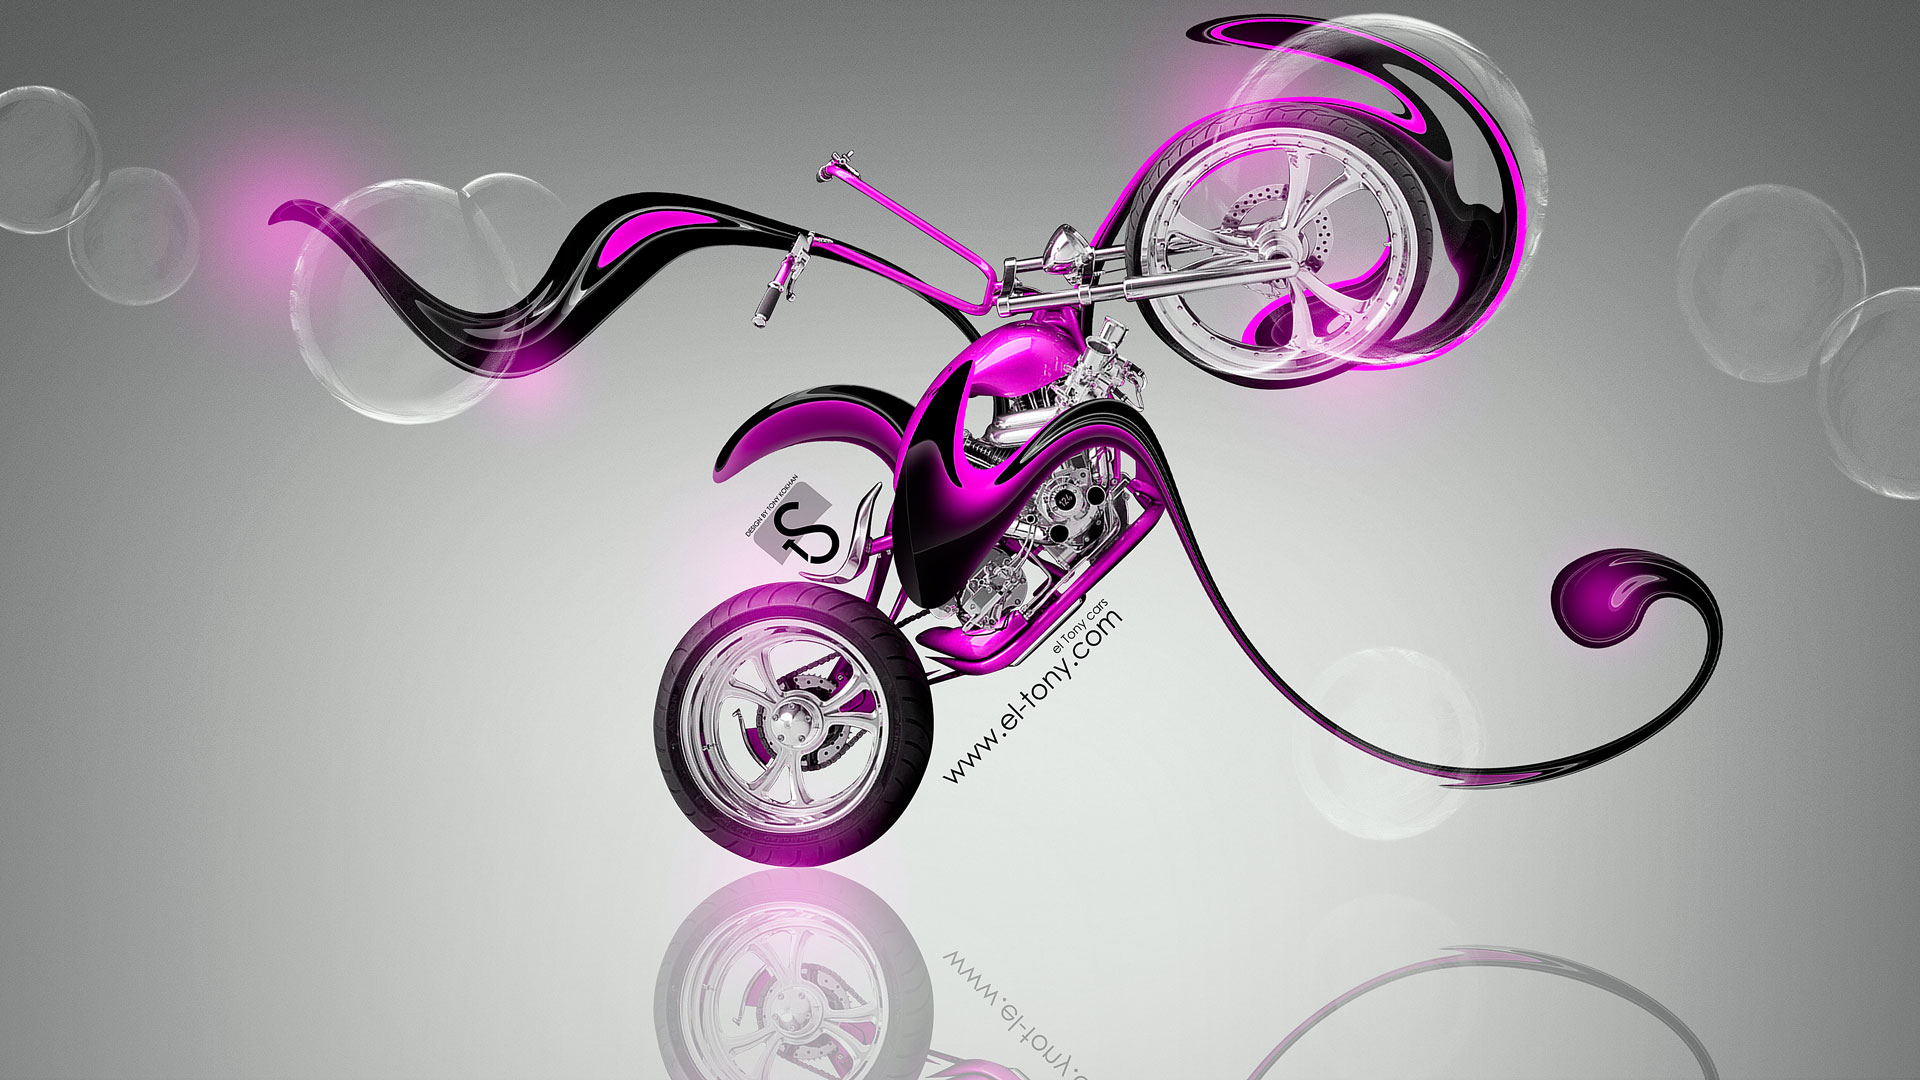 Elegant Mini Chopper Fantasy Plastic Bike 2014 Pink Neon